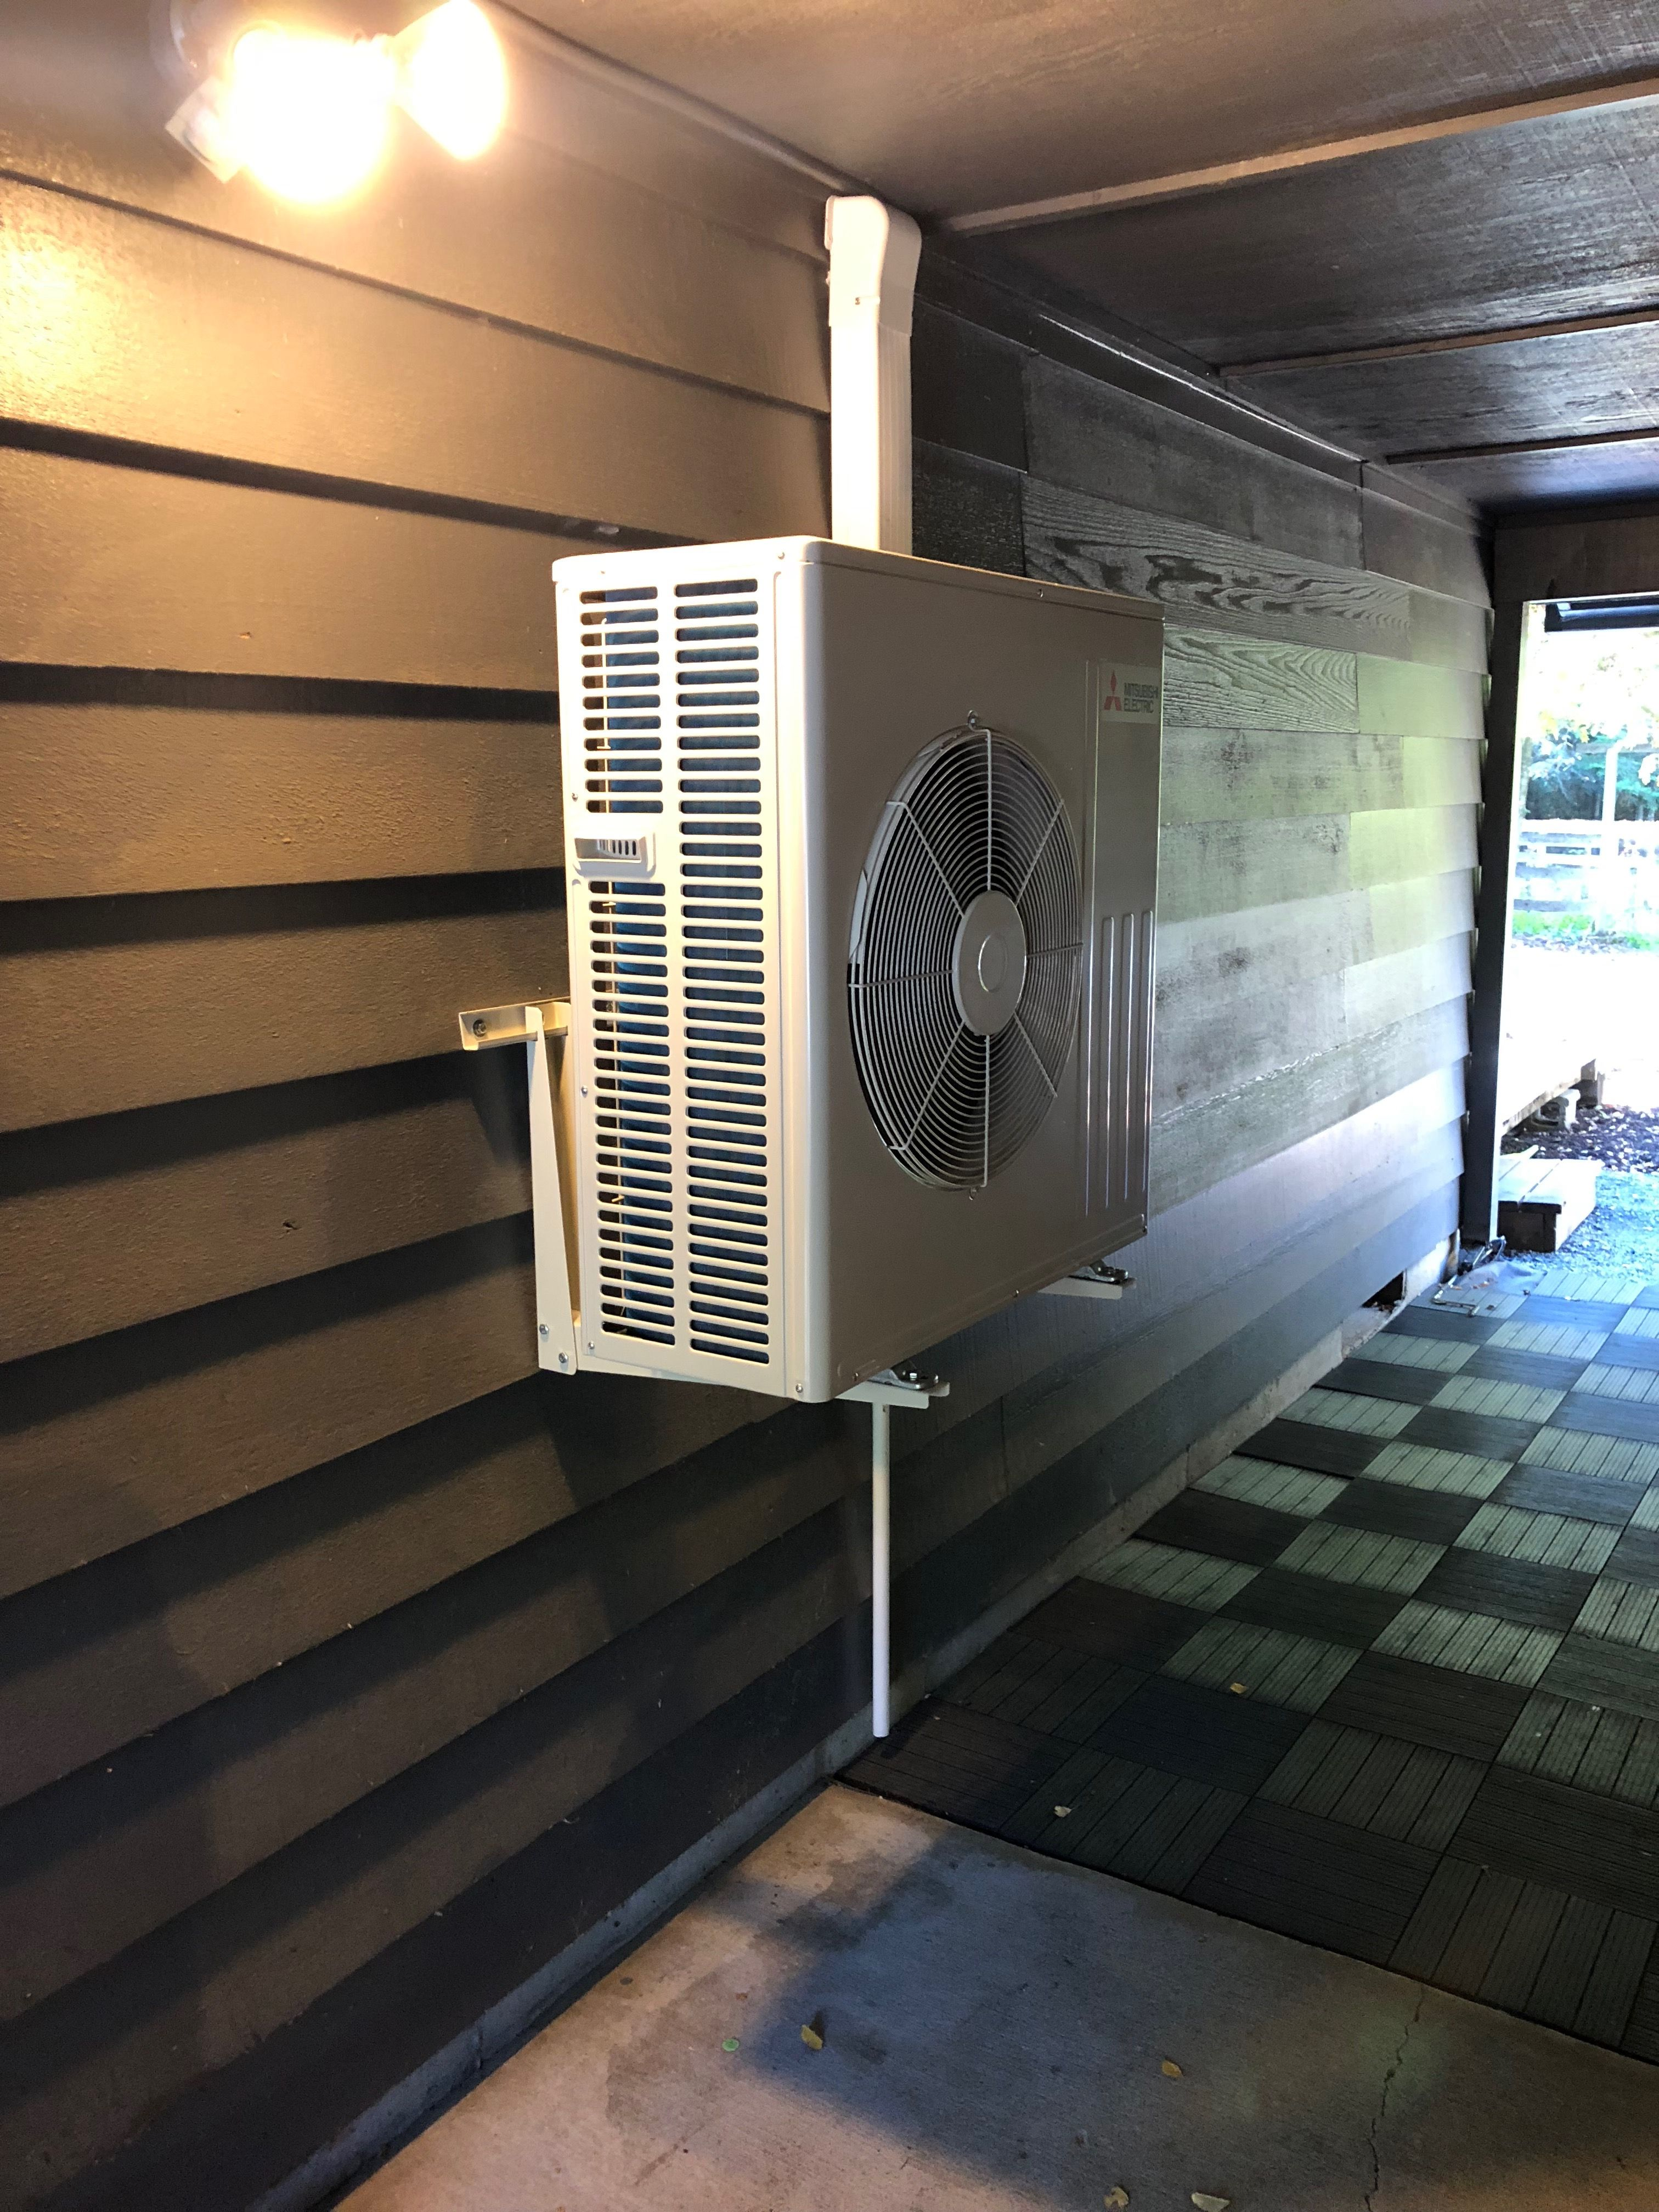 how to clean your air heat vents, house, diy, free, save